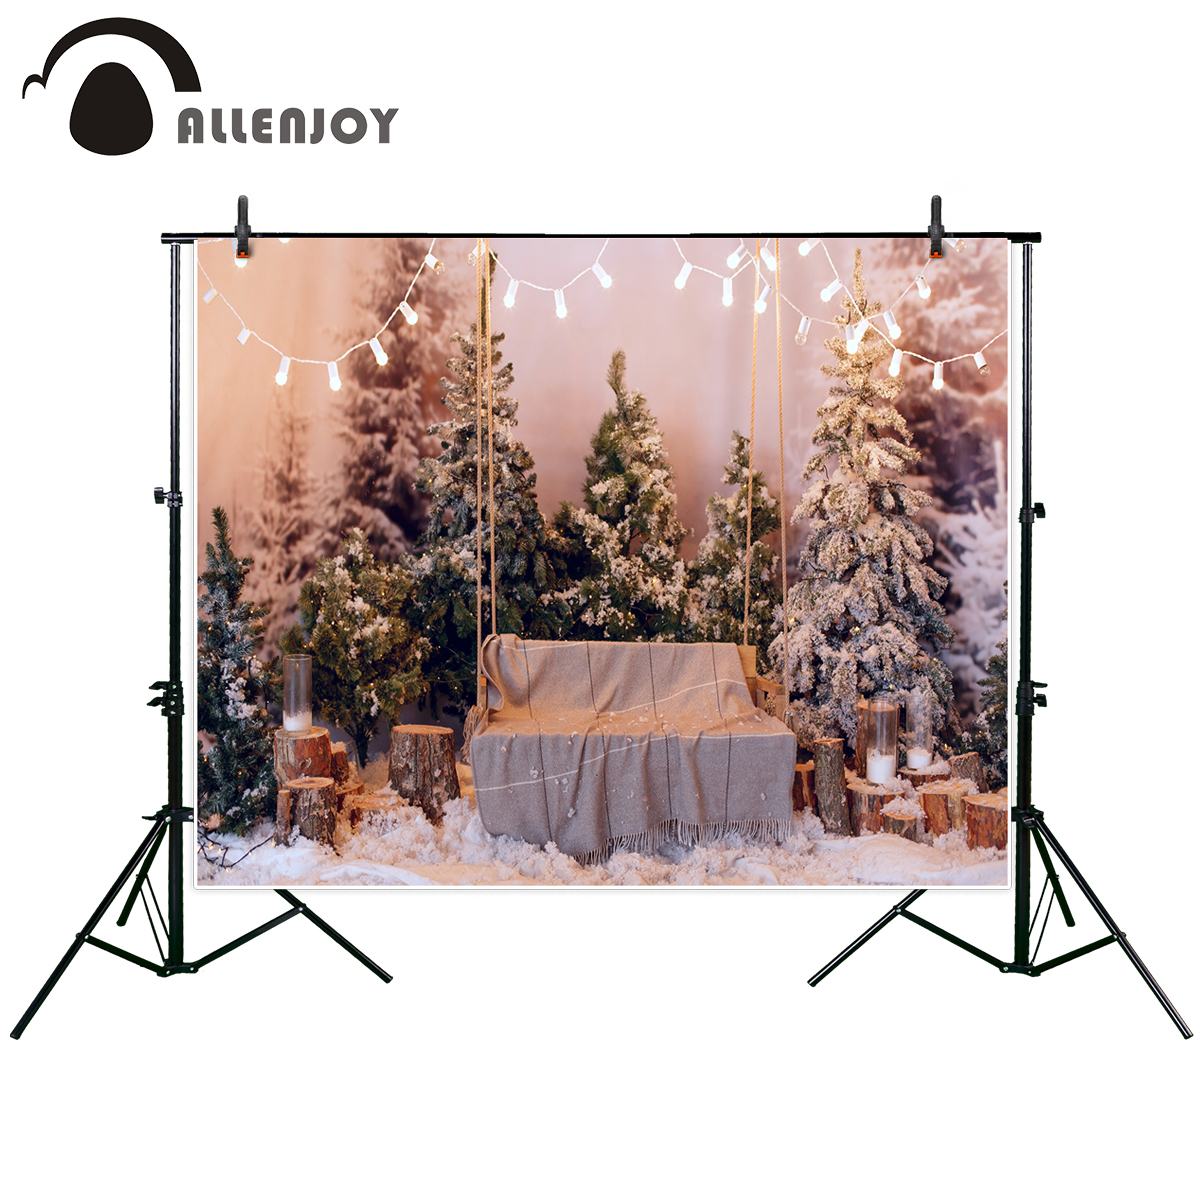 Allenjoy new arrivals photo backdrop Beautiful cozy Christmas interior snow-covered trees bench backdrop photocall photo printed